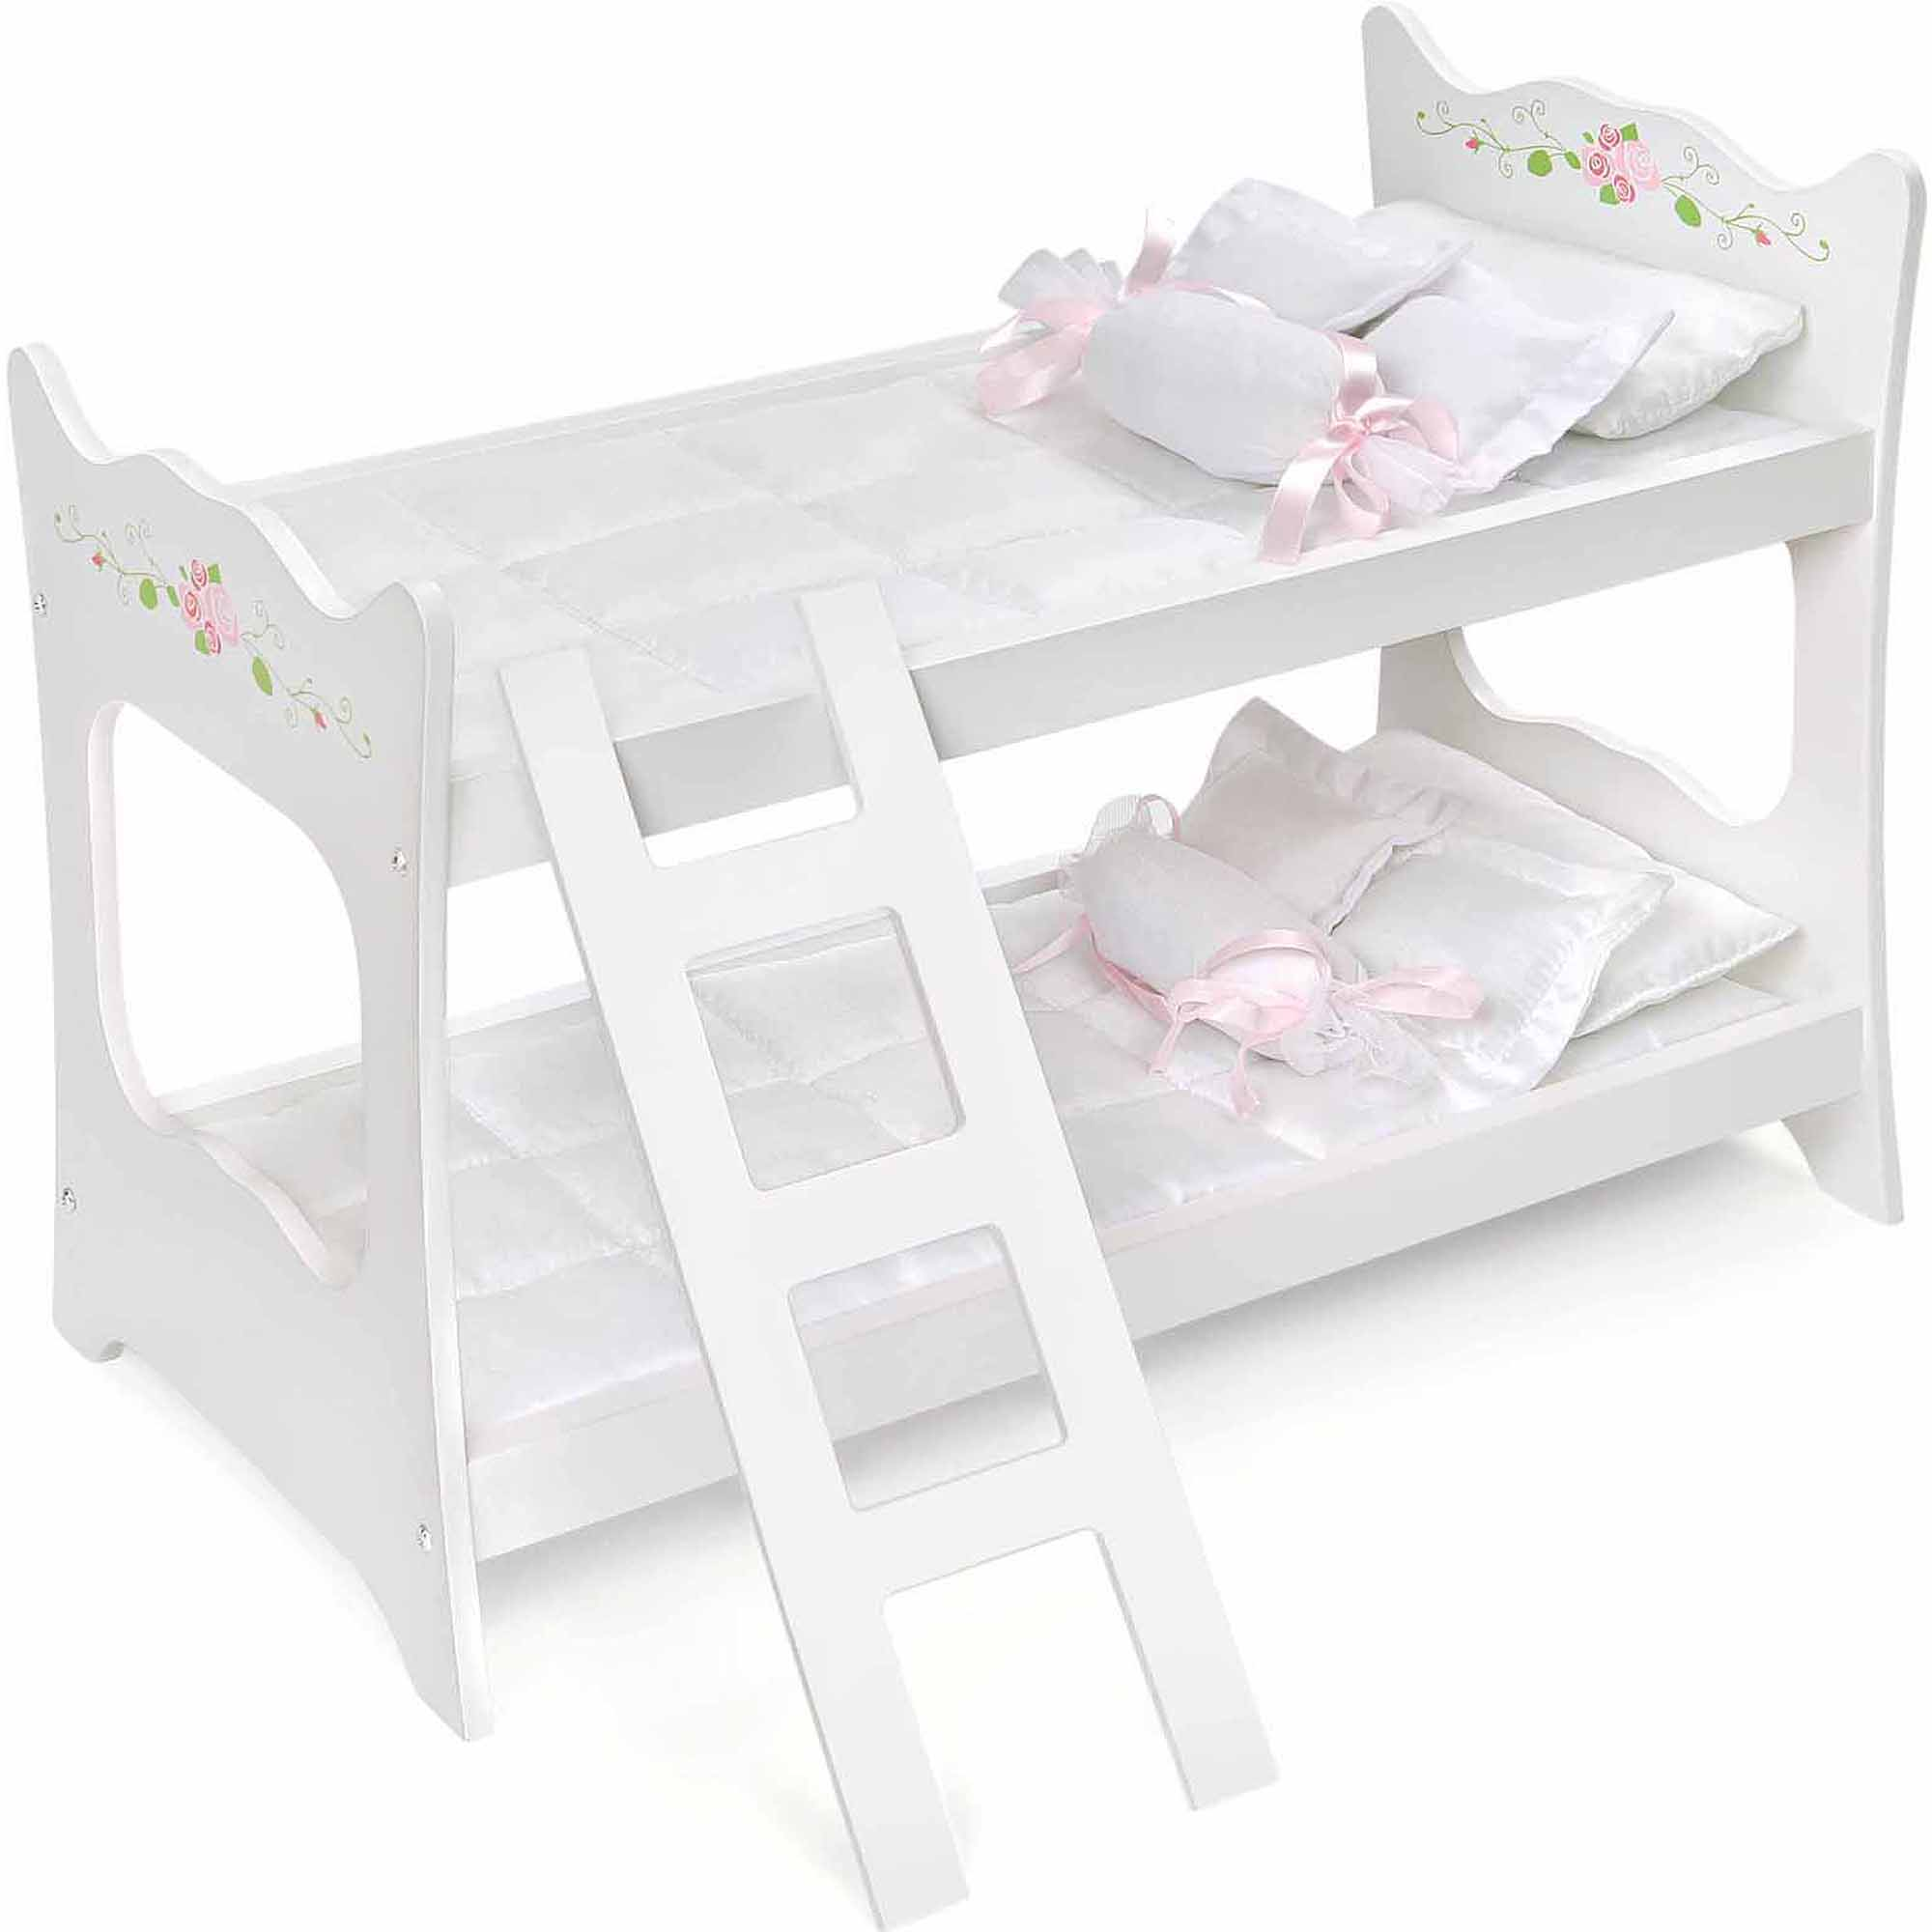 Charming and Cute Bitty Baby Changing Table: Baby Changing Table Walmart | Bitty Baby Changing Table | Ivory Changing Table